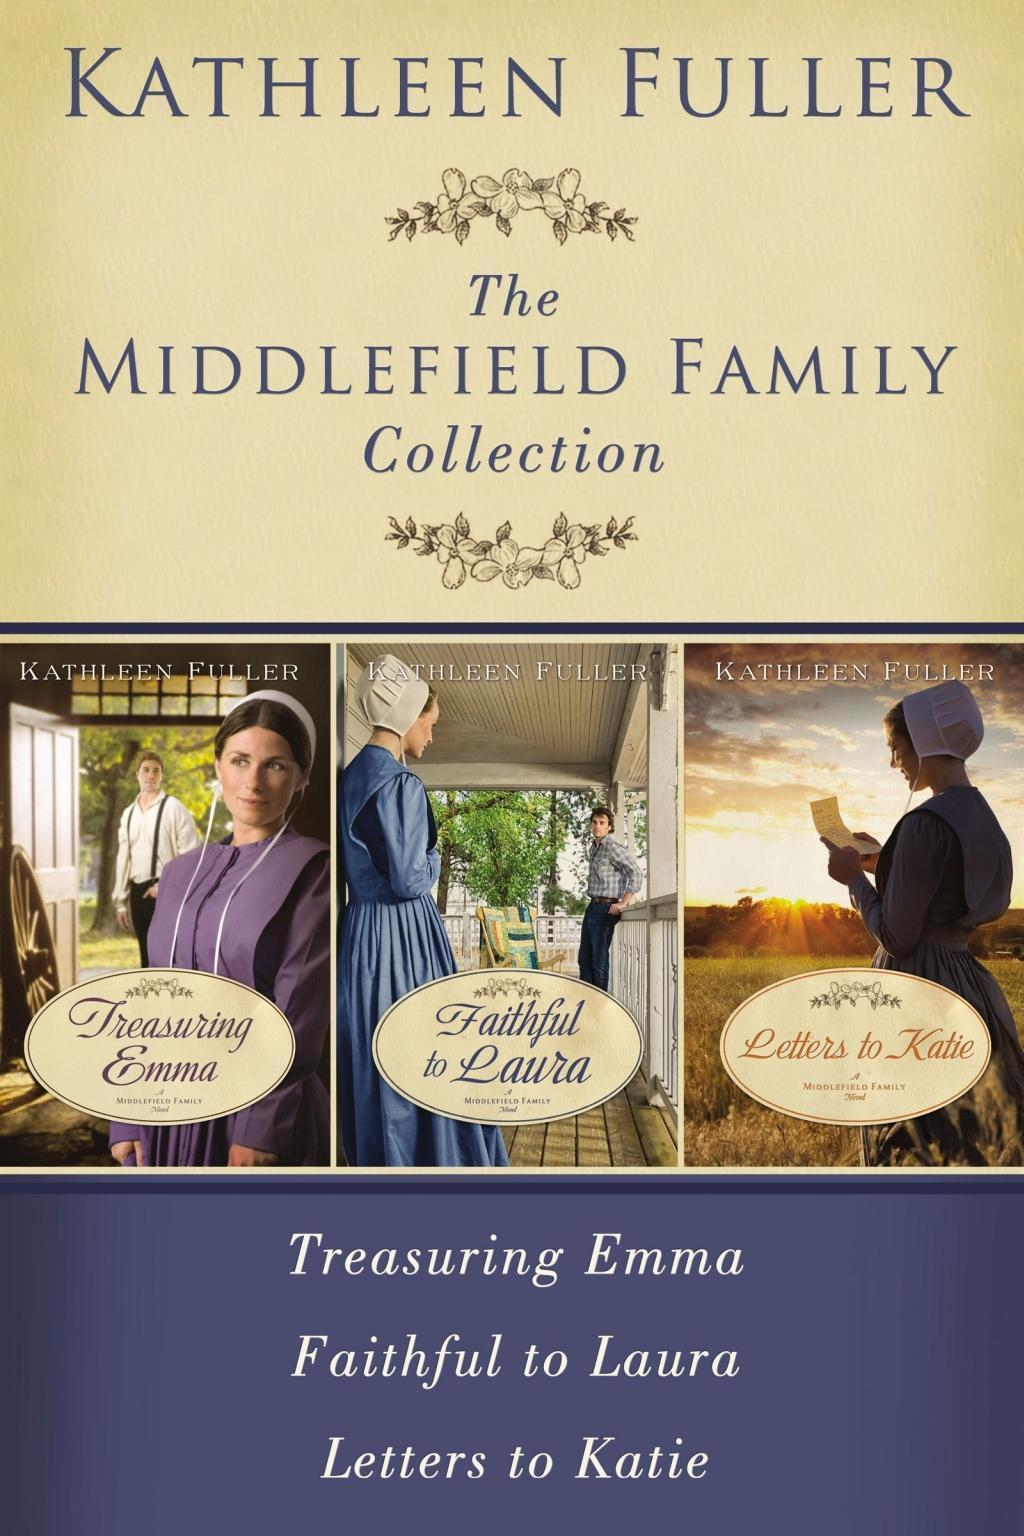 The Middlefield Family Collection